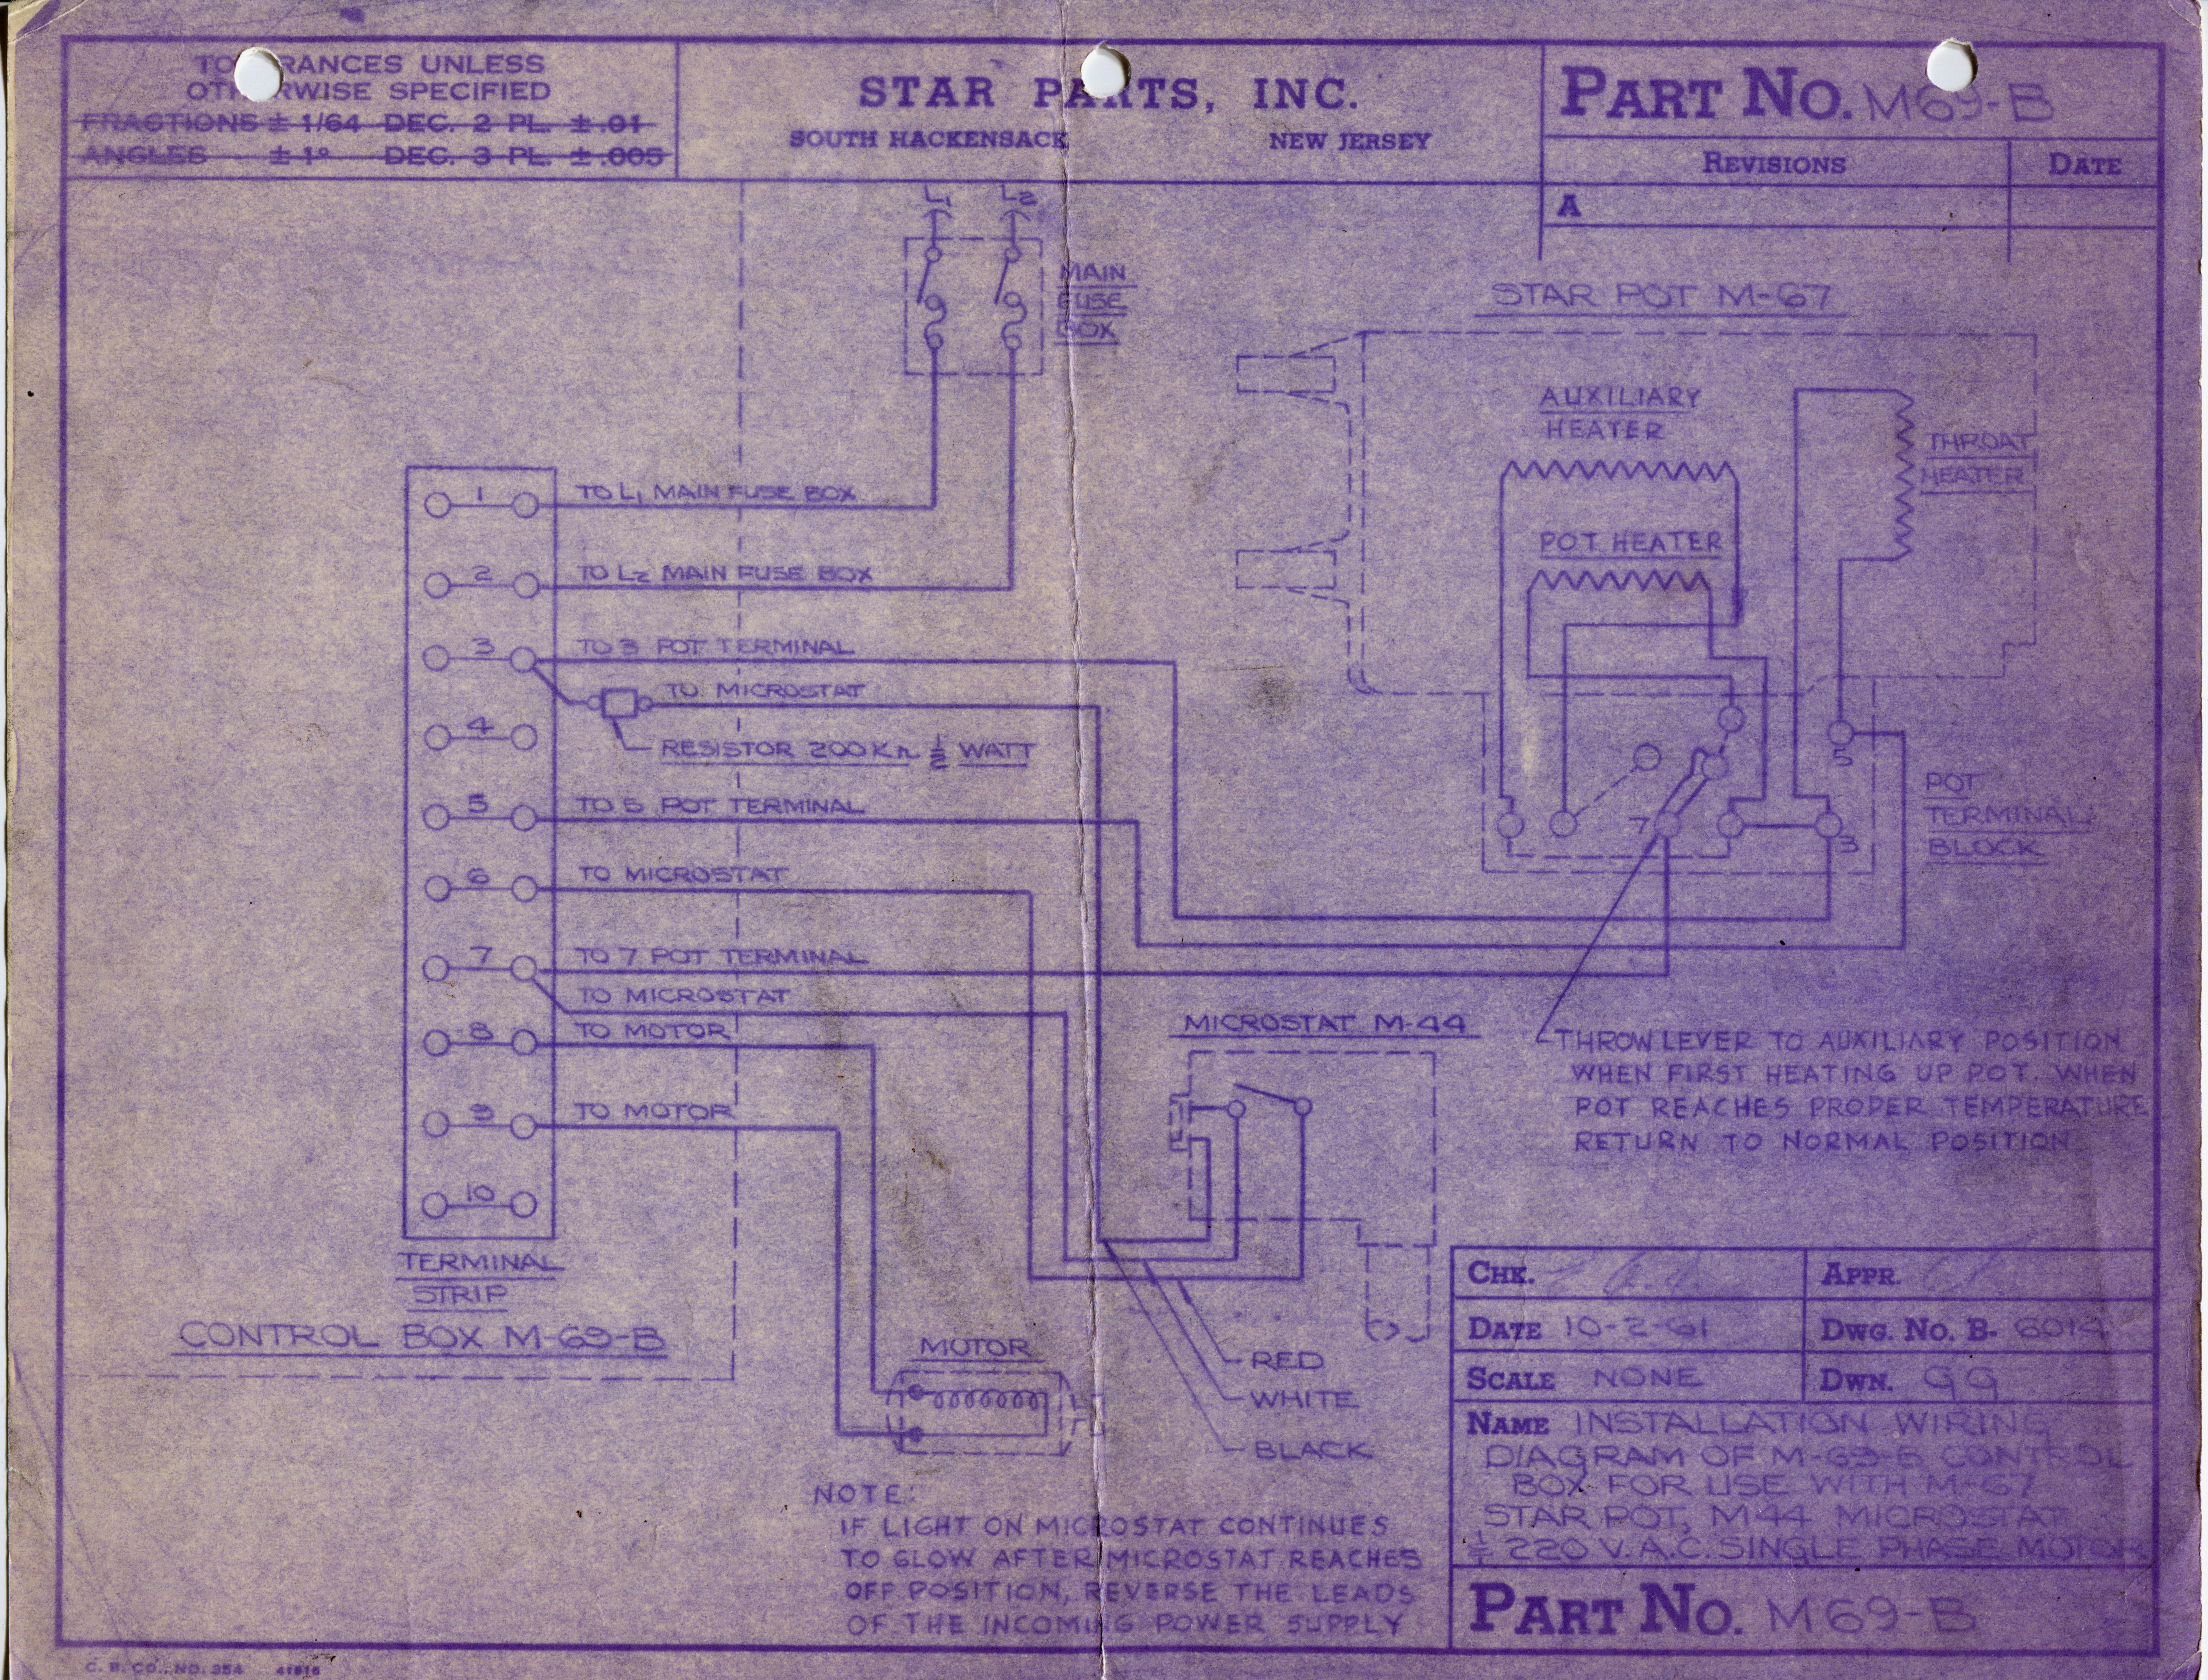 Engineering Drawings Data Part Numbers M69 Linotype Parts 220 Wiring Diagram Box No B Dwg 6014 1961 10 02 Original Version Installation Of M60 Control For Use With M 67 Star Pot M44 Microstat